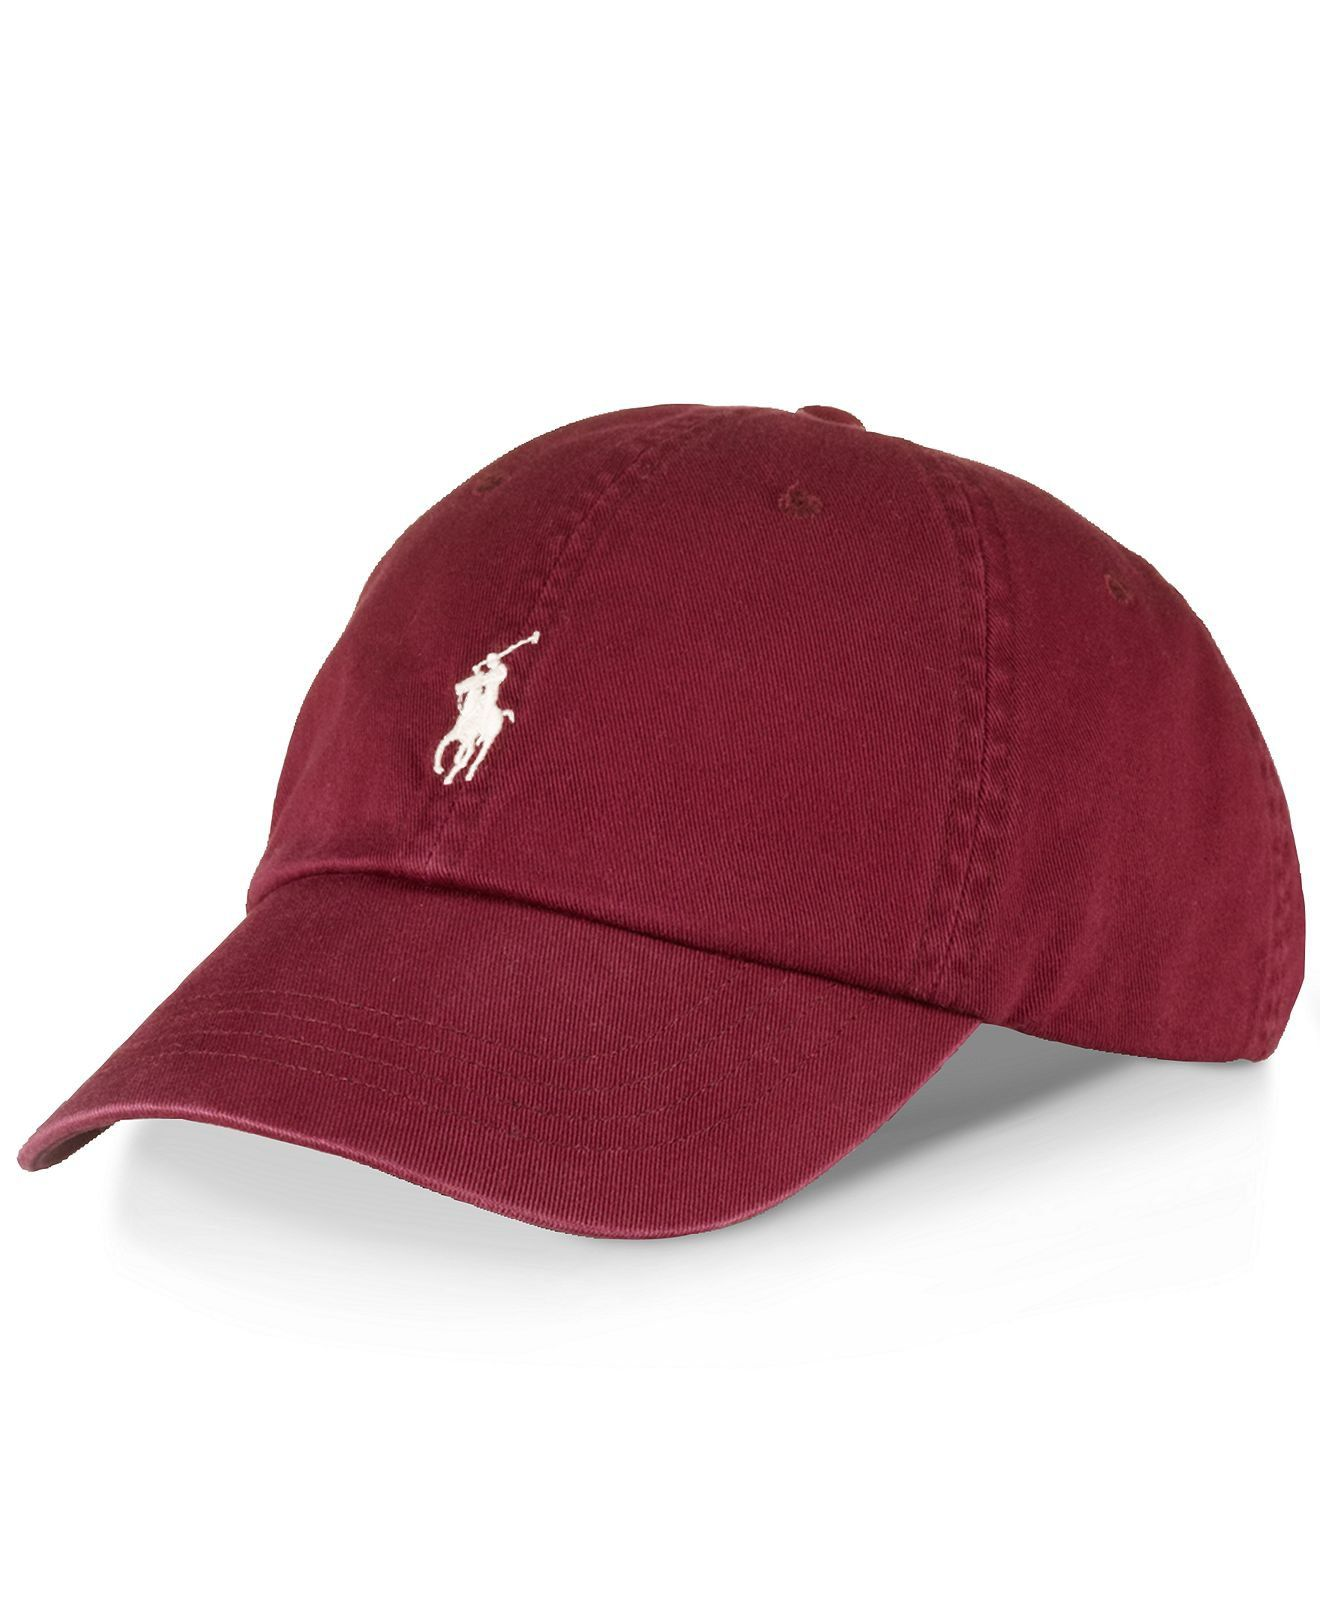 Polo Ralph Lauren Hat, Classic Chino Sports Cap on Wanelo   Fashhh ... a2a8d48dec1